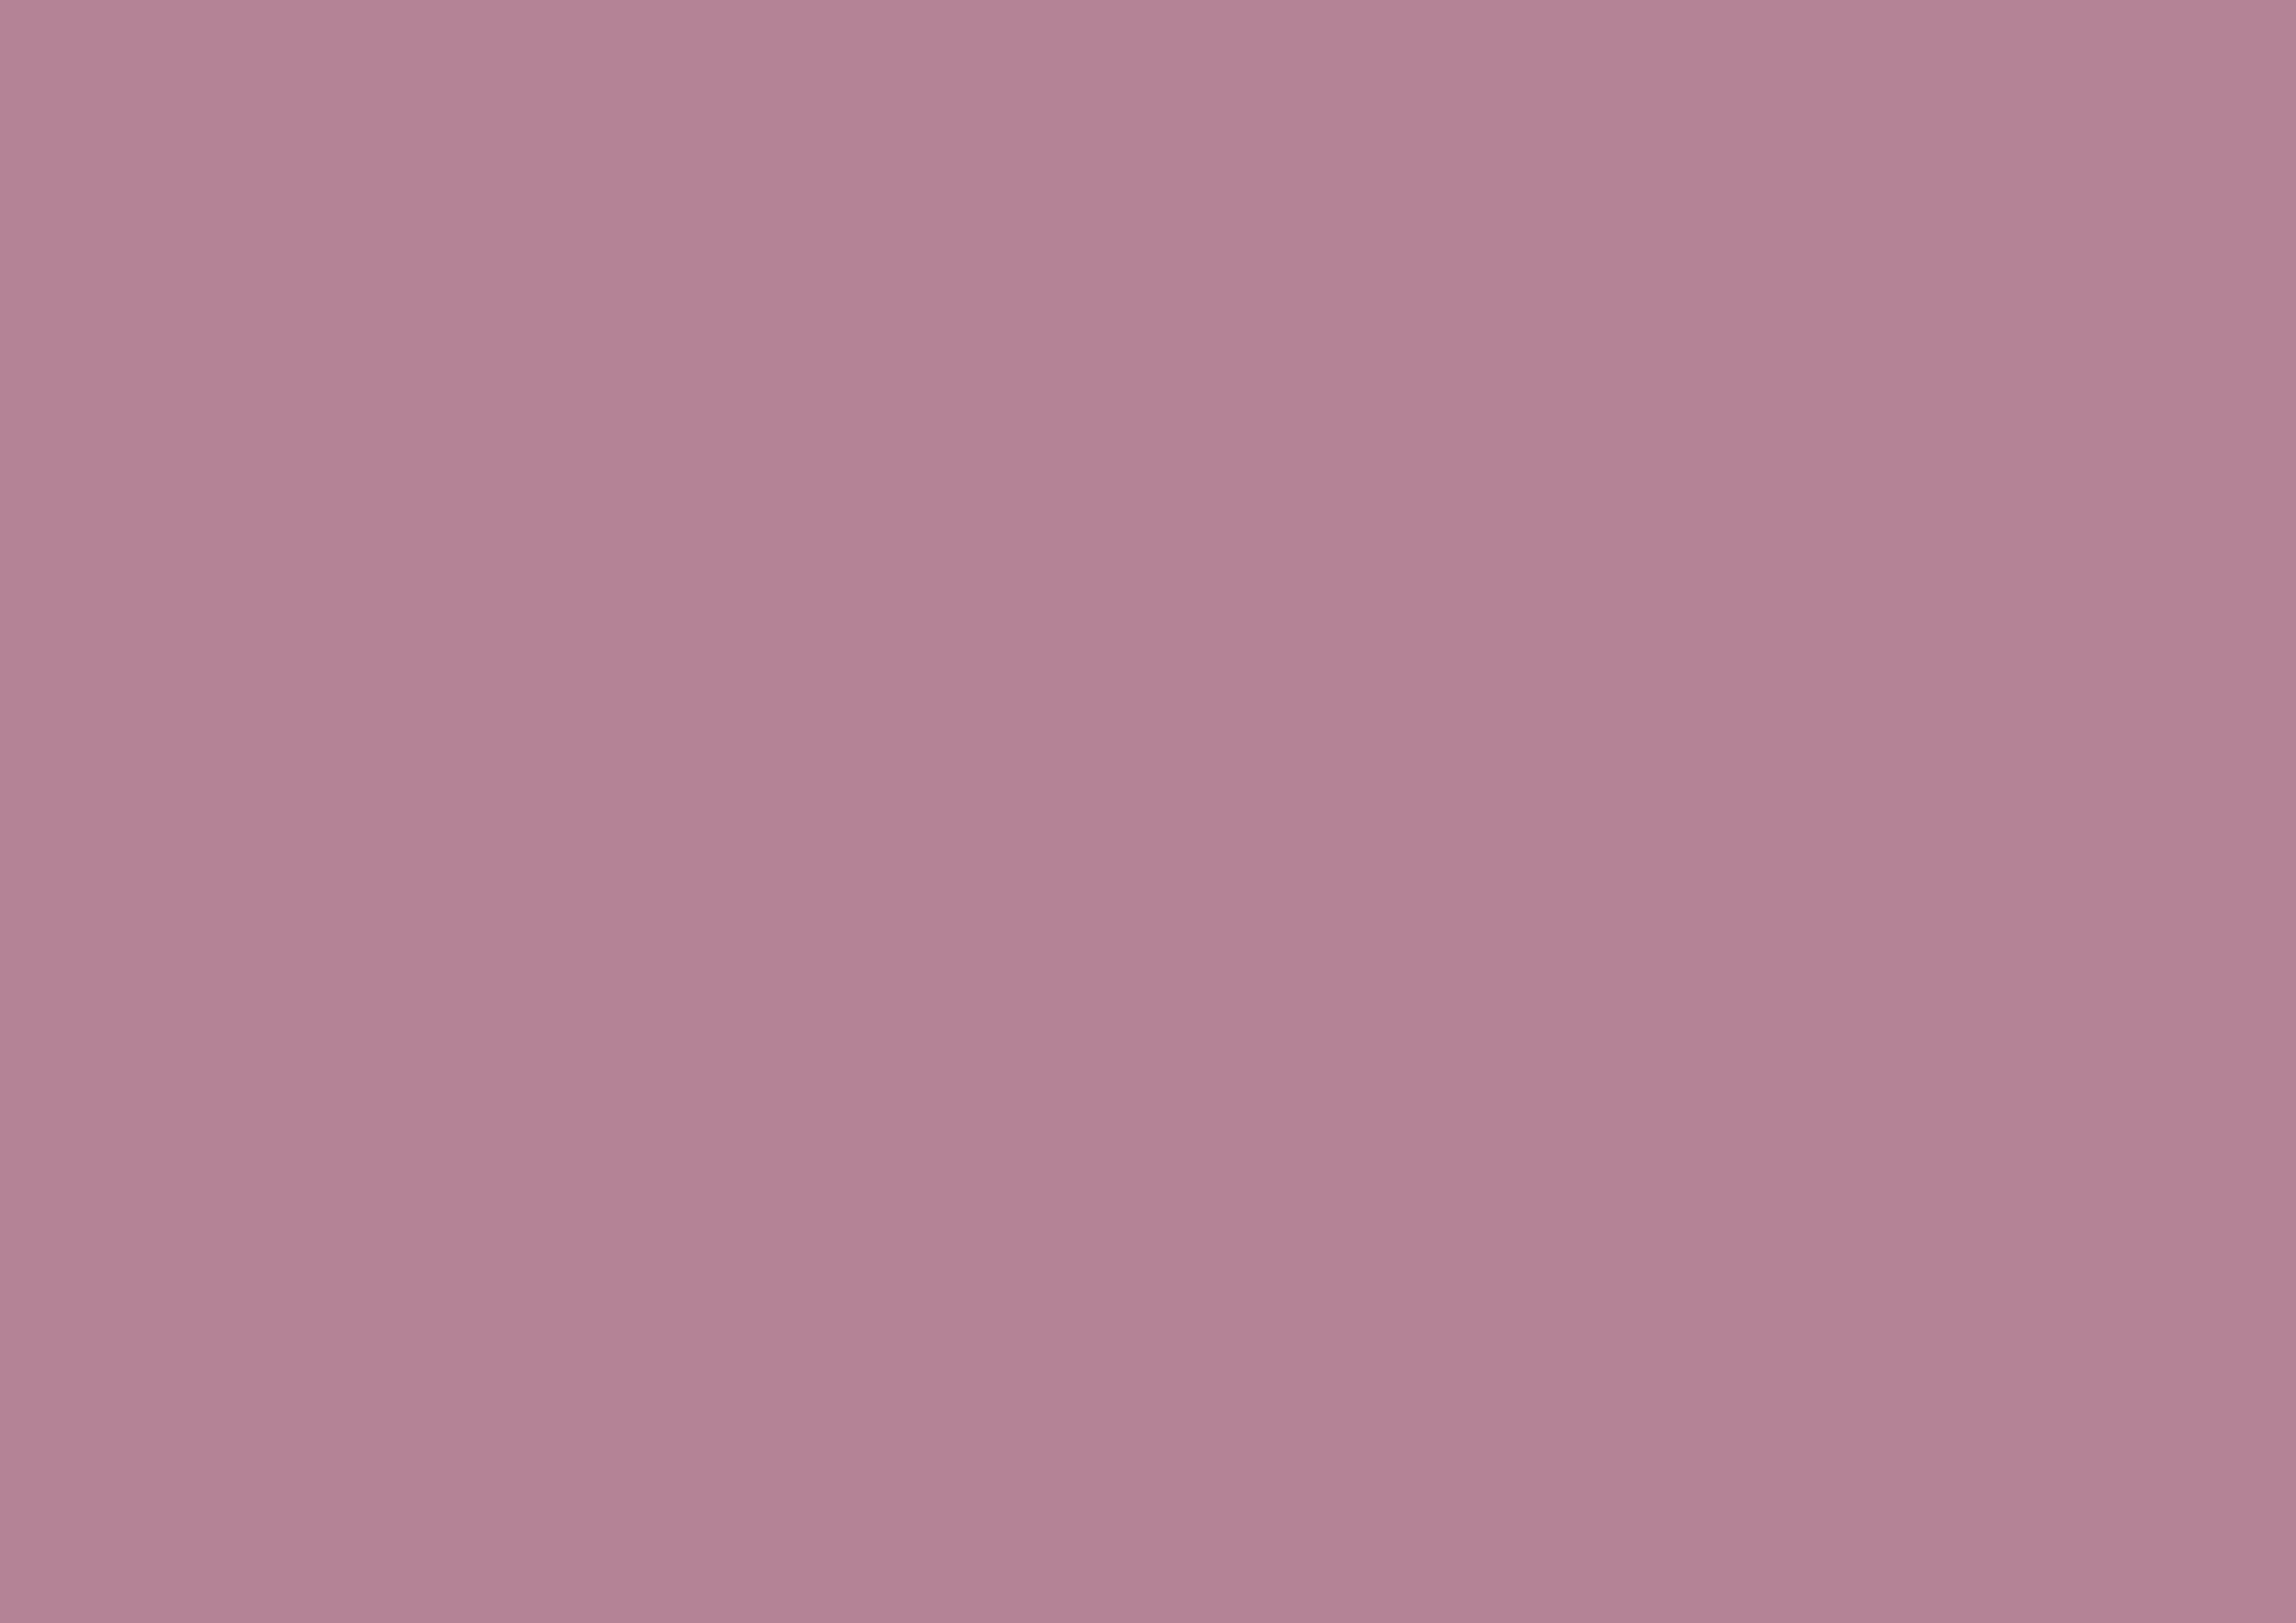 3508x2480 English Lavender Solid Color Background